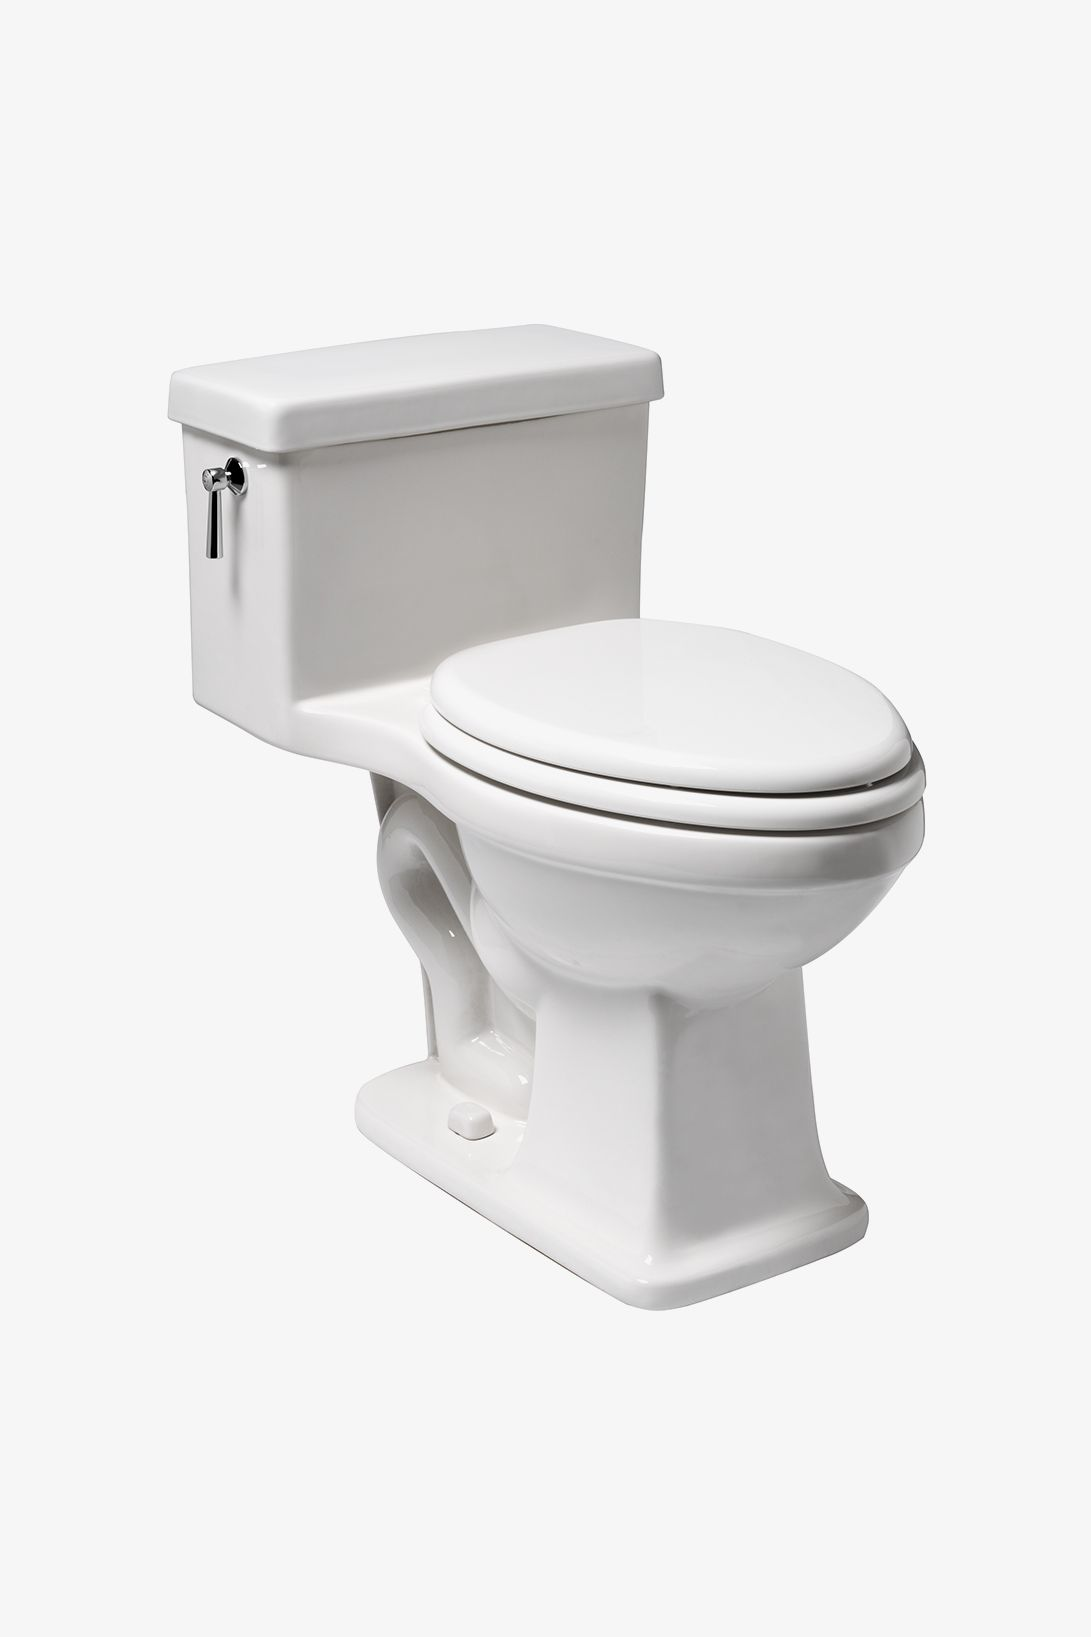 Alden One Piece High Efficiency Elongated Watercloset With Slow